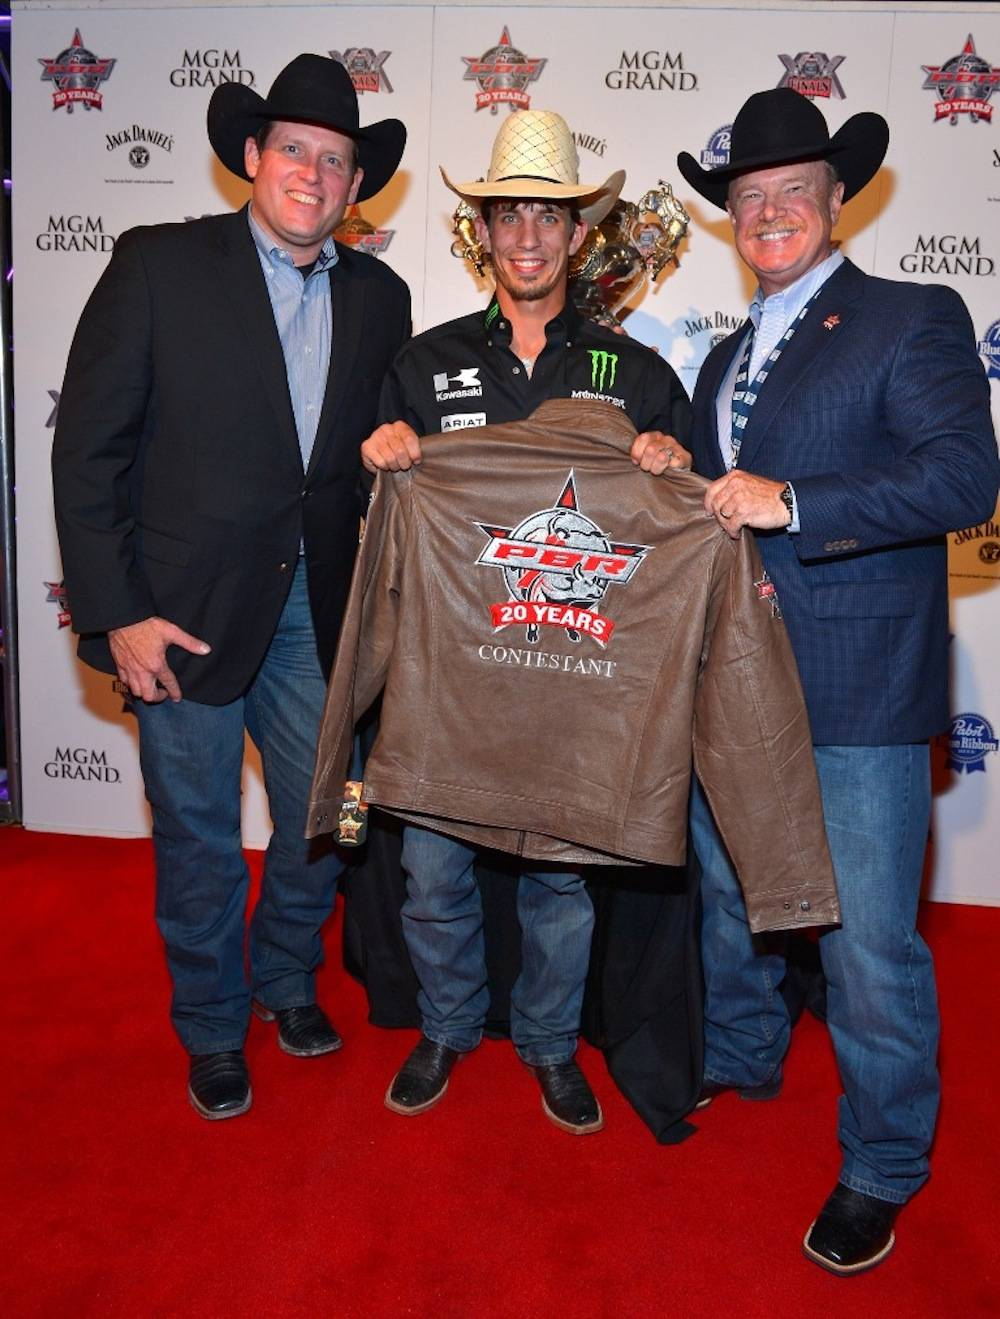 10.21.13 Bull rider JB Mauney with Sean Gleason (left) and Jim Haworth (right) at the Welcome Reception at MGM Grand. Photo by Bryan Steffy